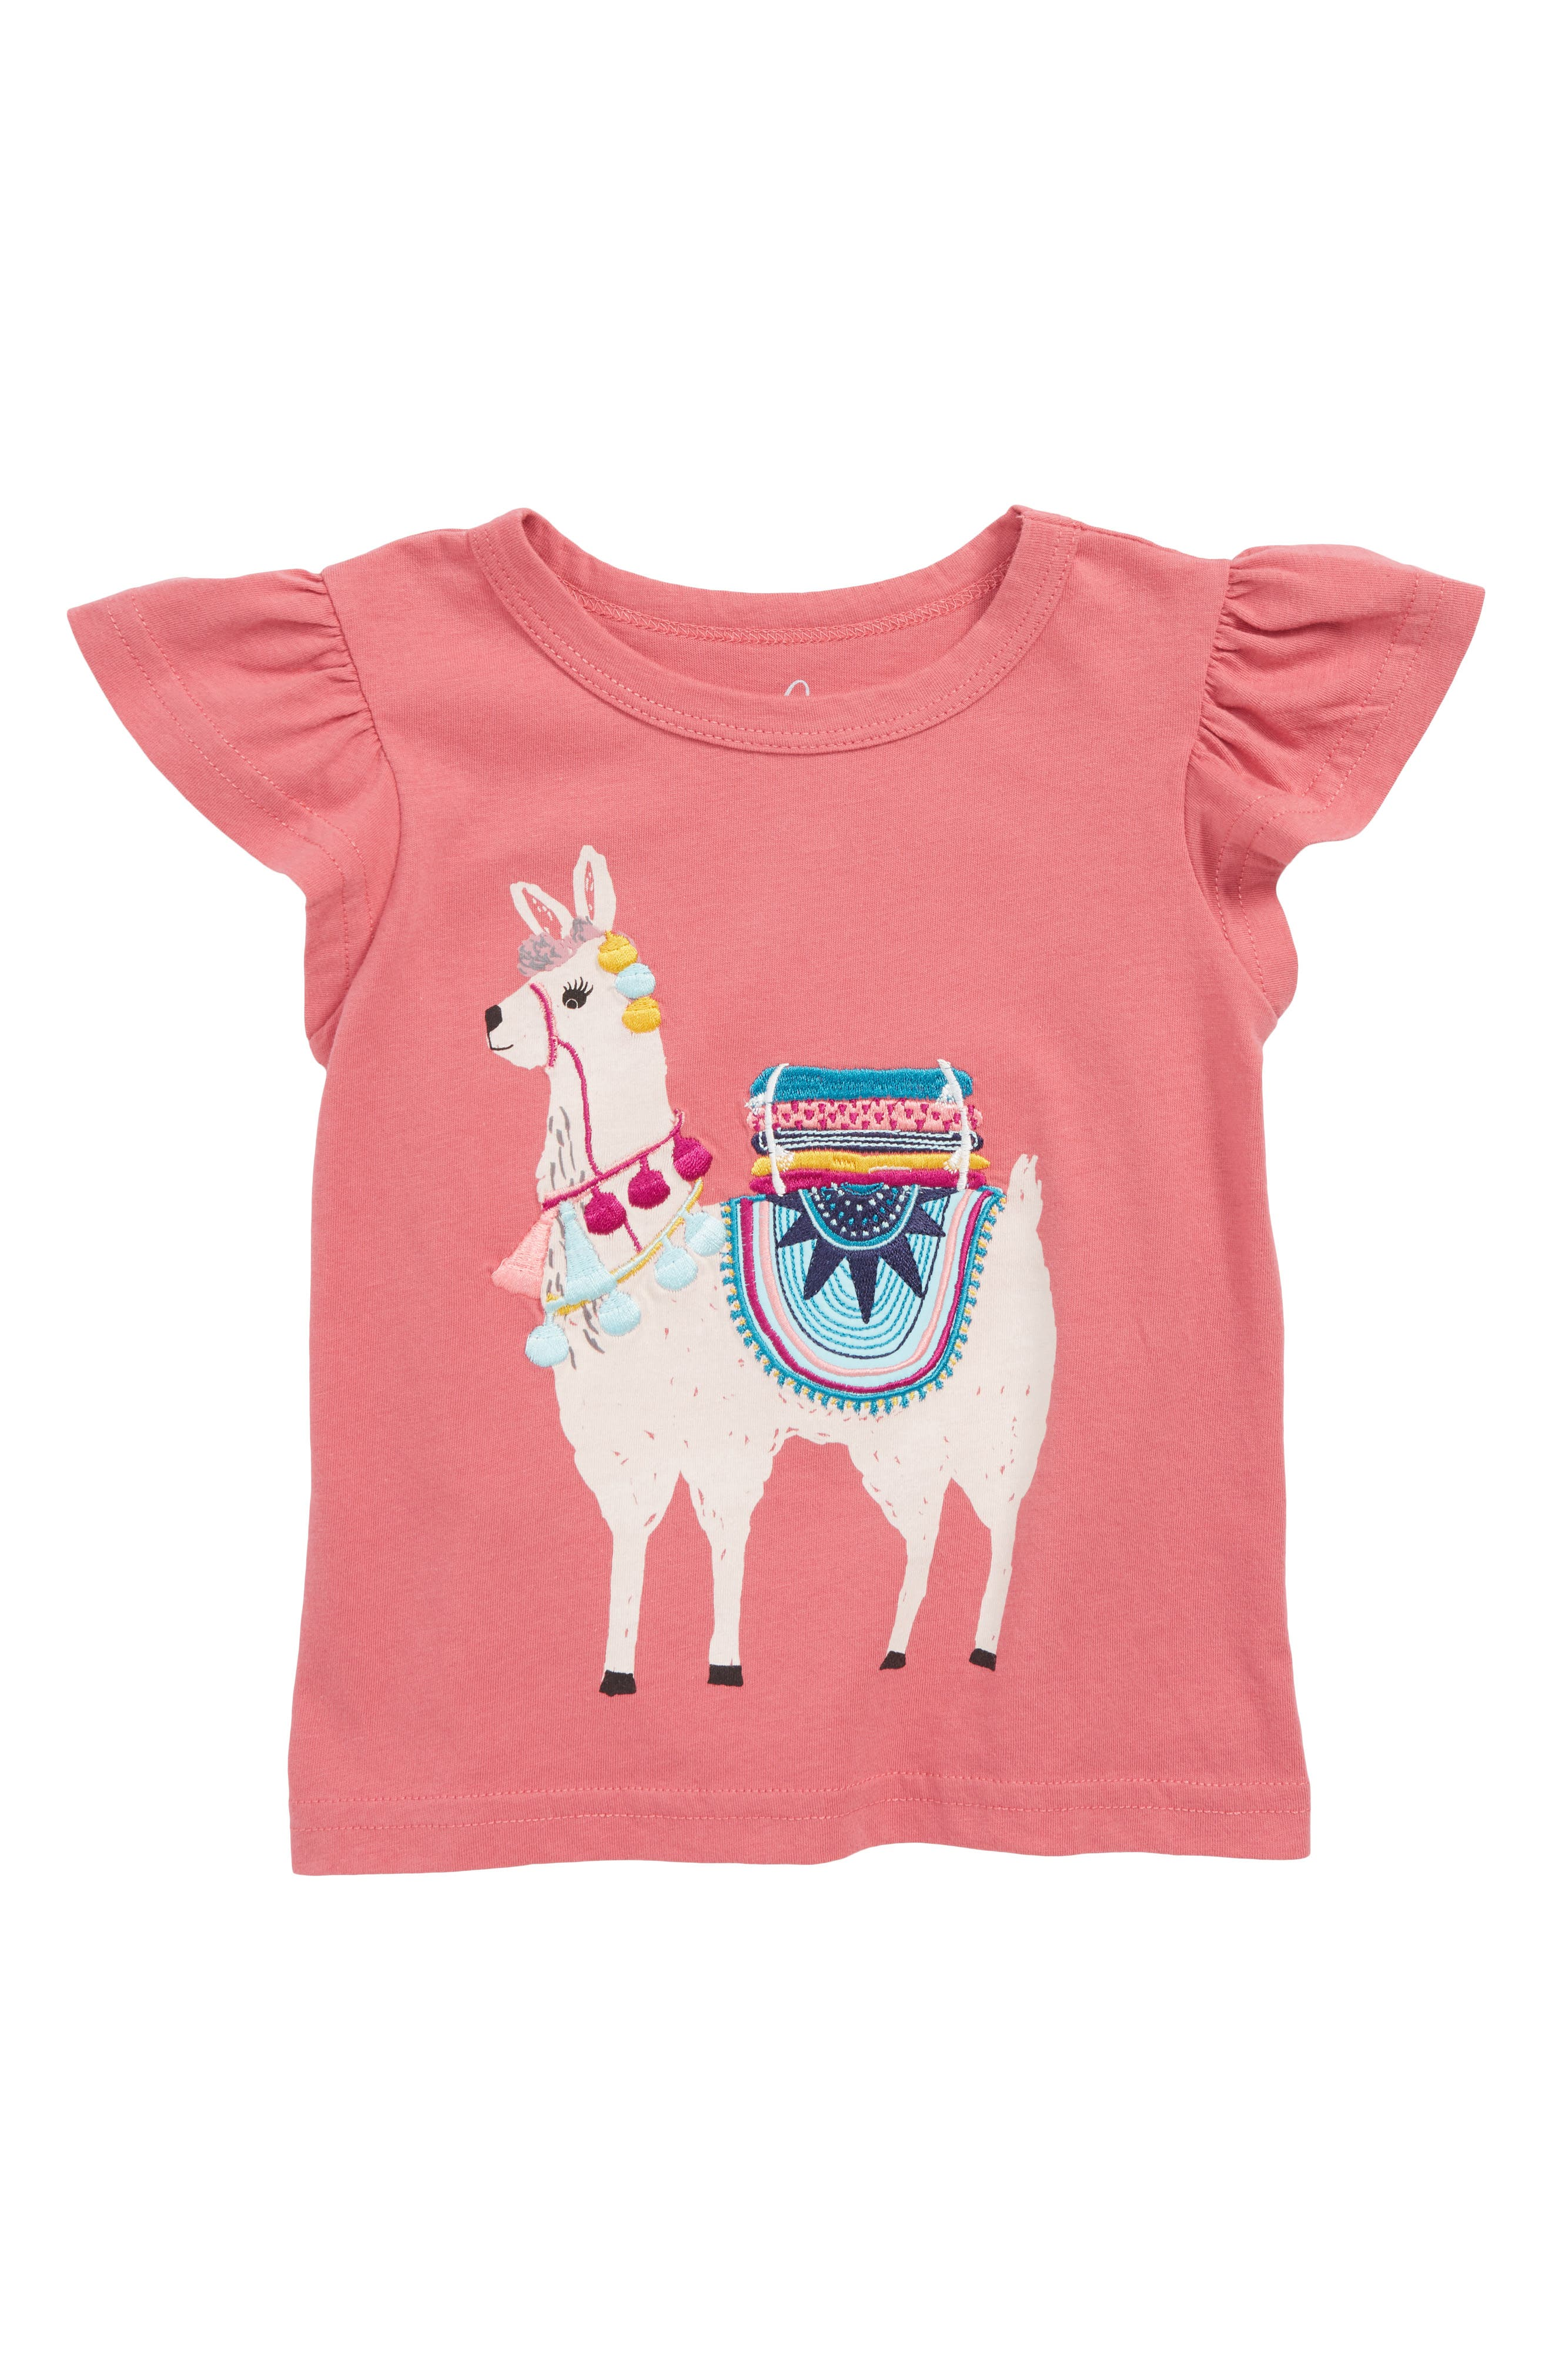 Llama Embroidered Tee,                         Main,                         color, PINK